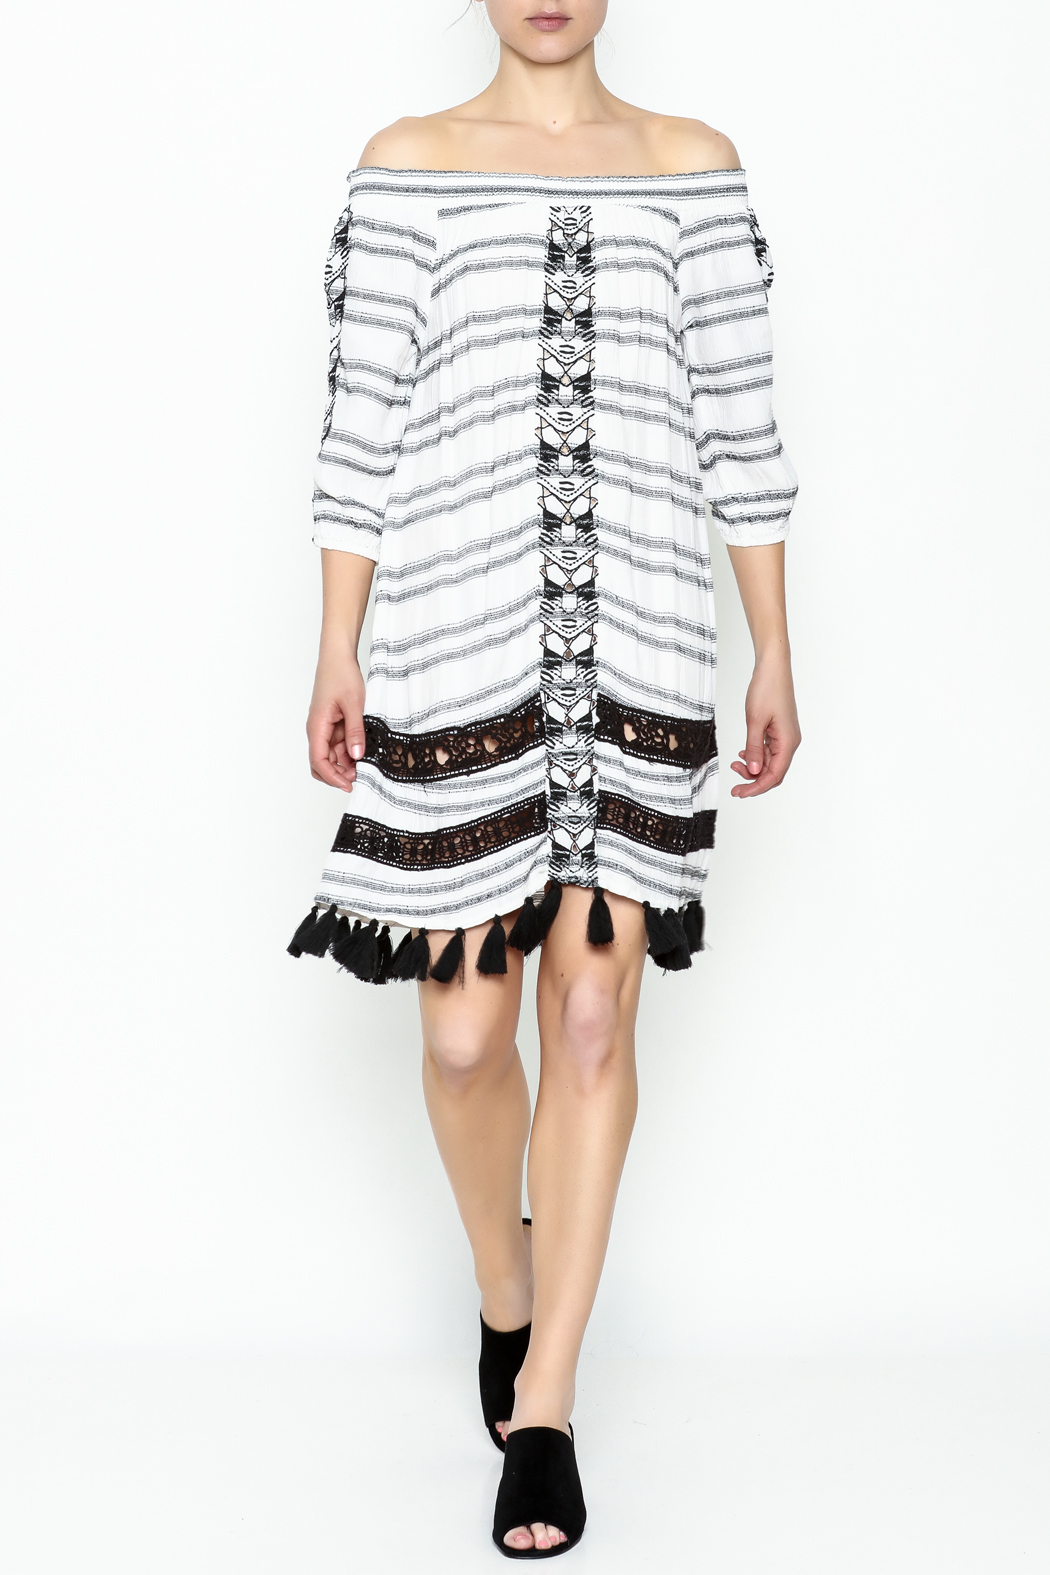 Muche et Muchette Striped Embroidered Dress - Side Cropped Image